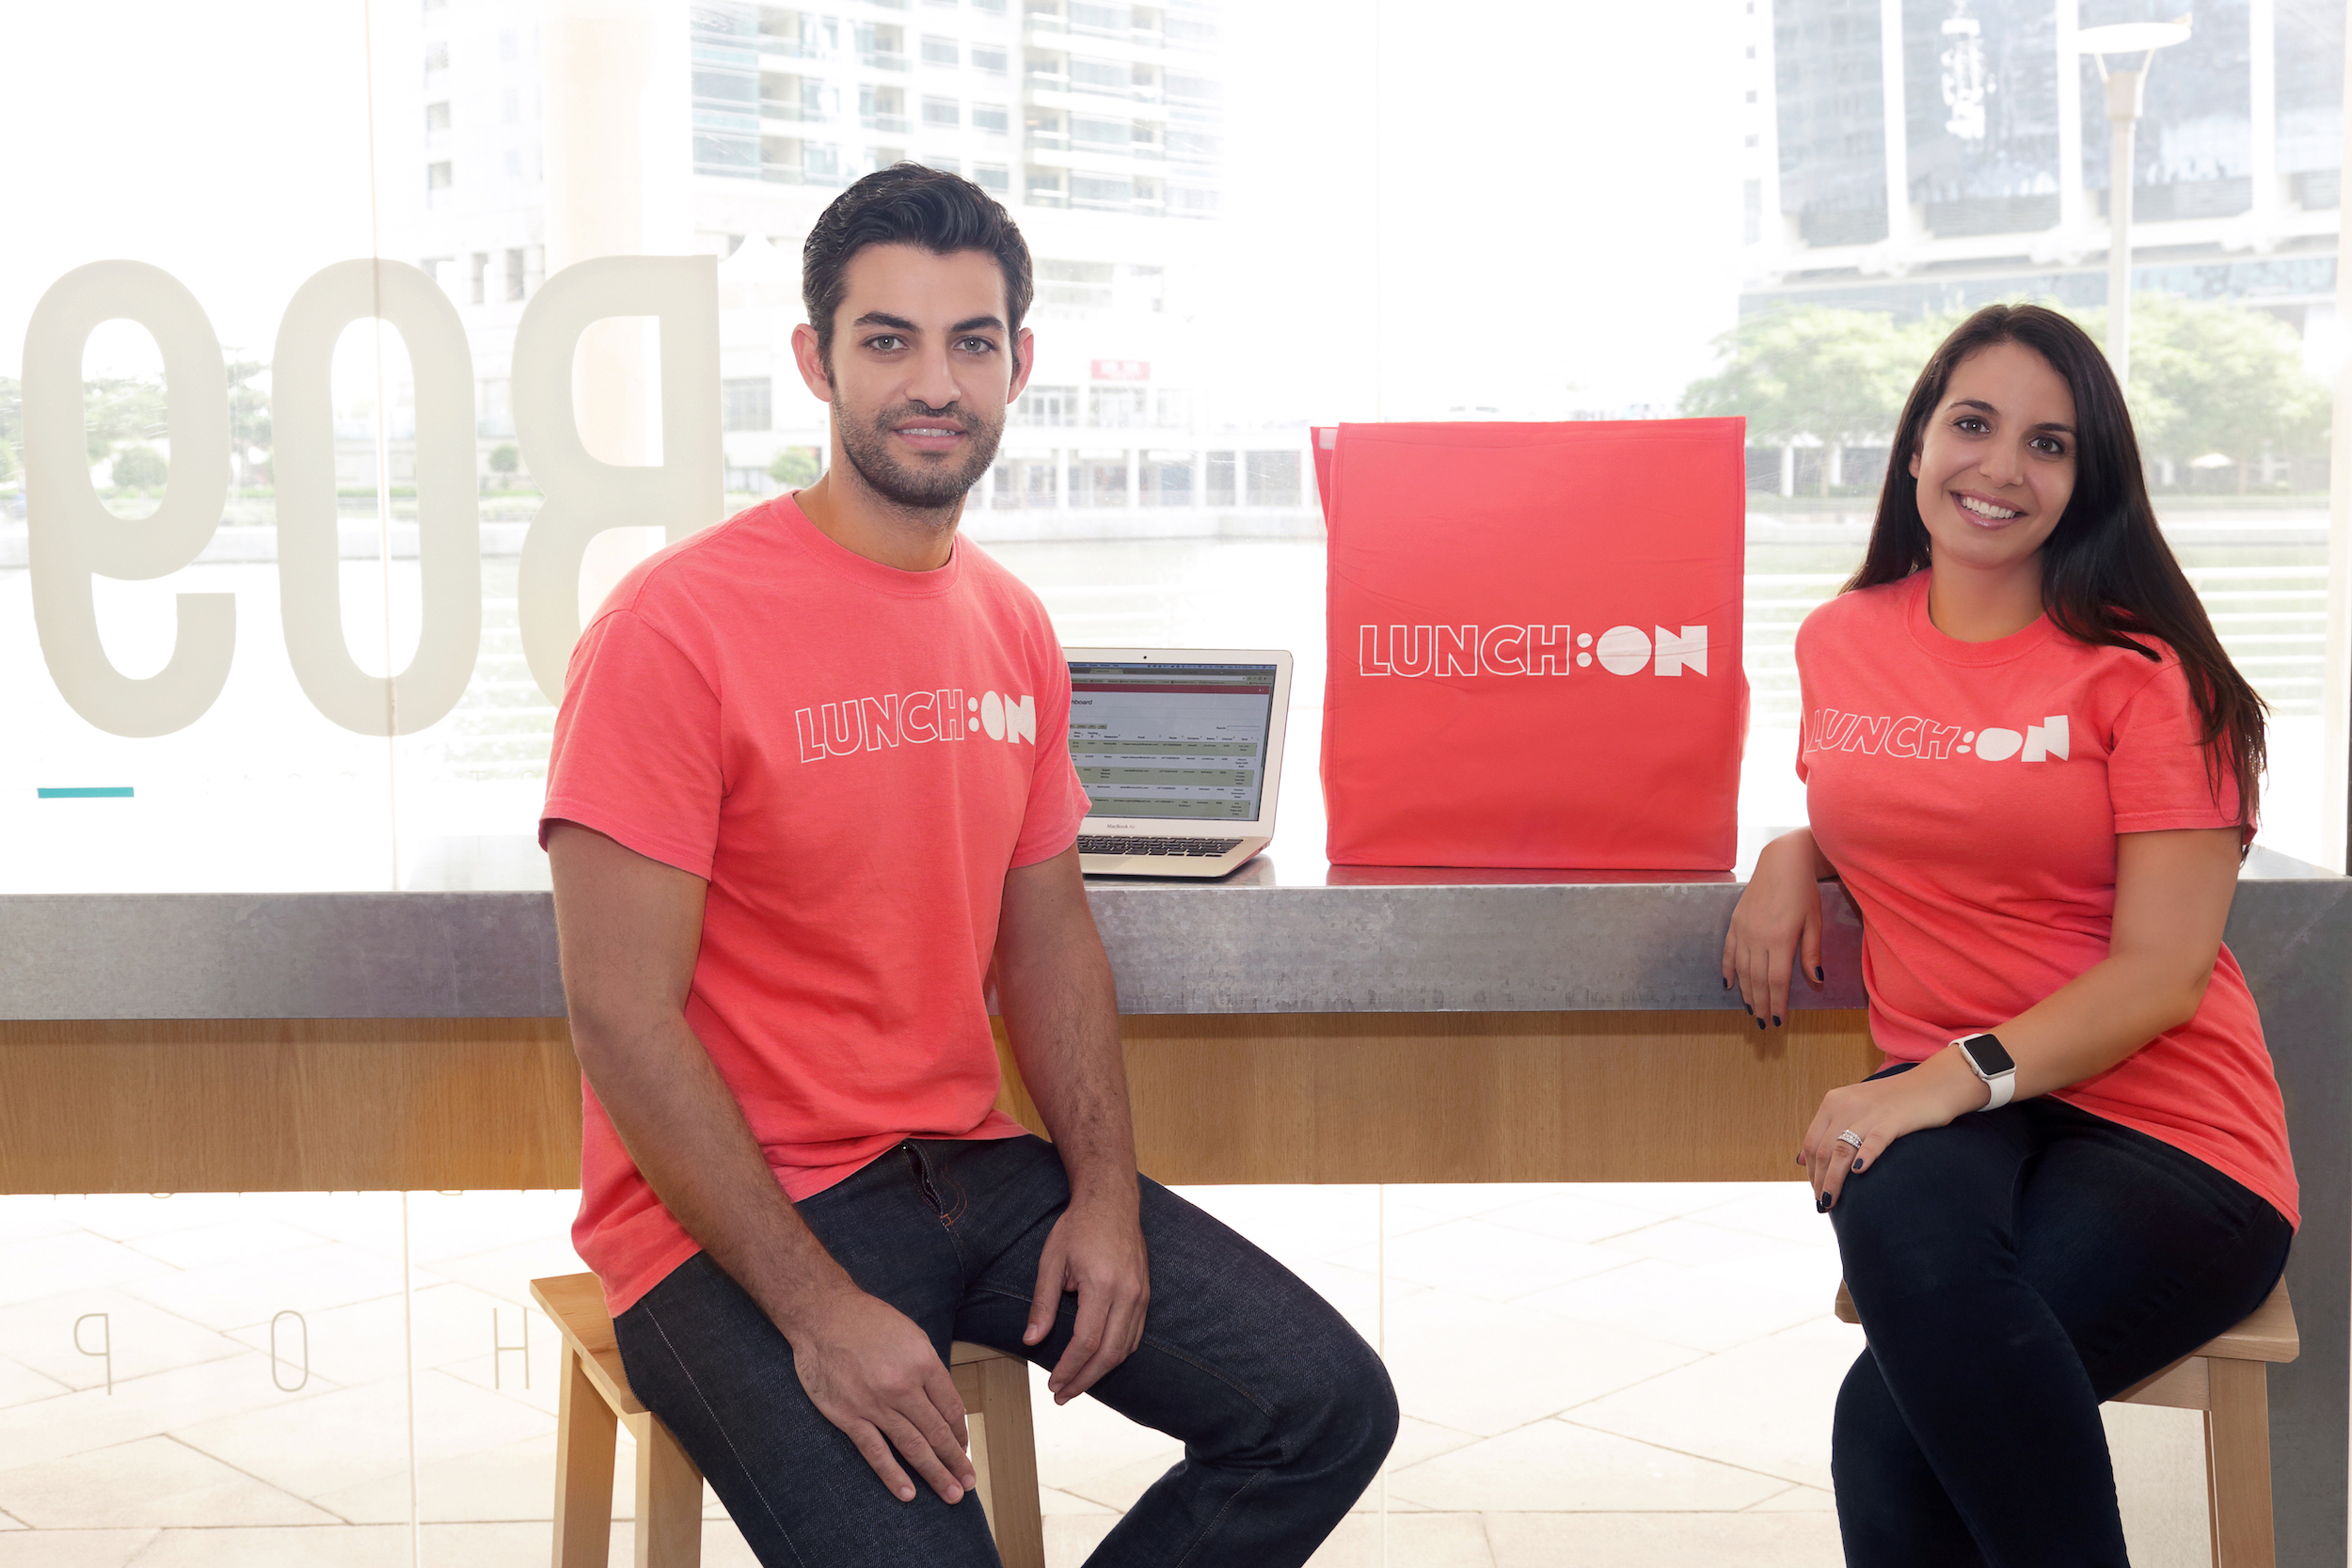 LUNCH:ON gives Deliveroo a run for its money in the region, extending its Series A round to $5.5M with multiple new investors participating